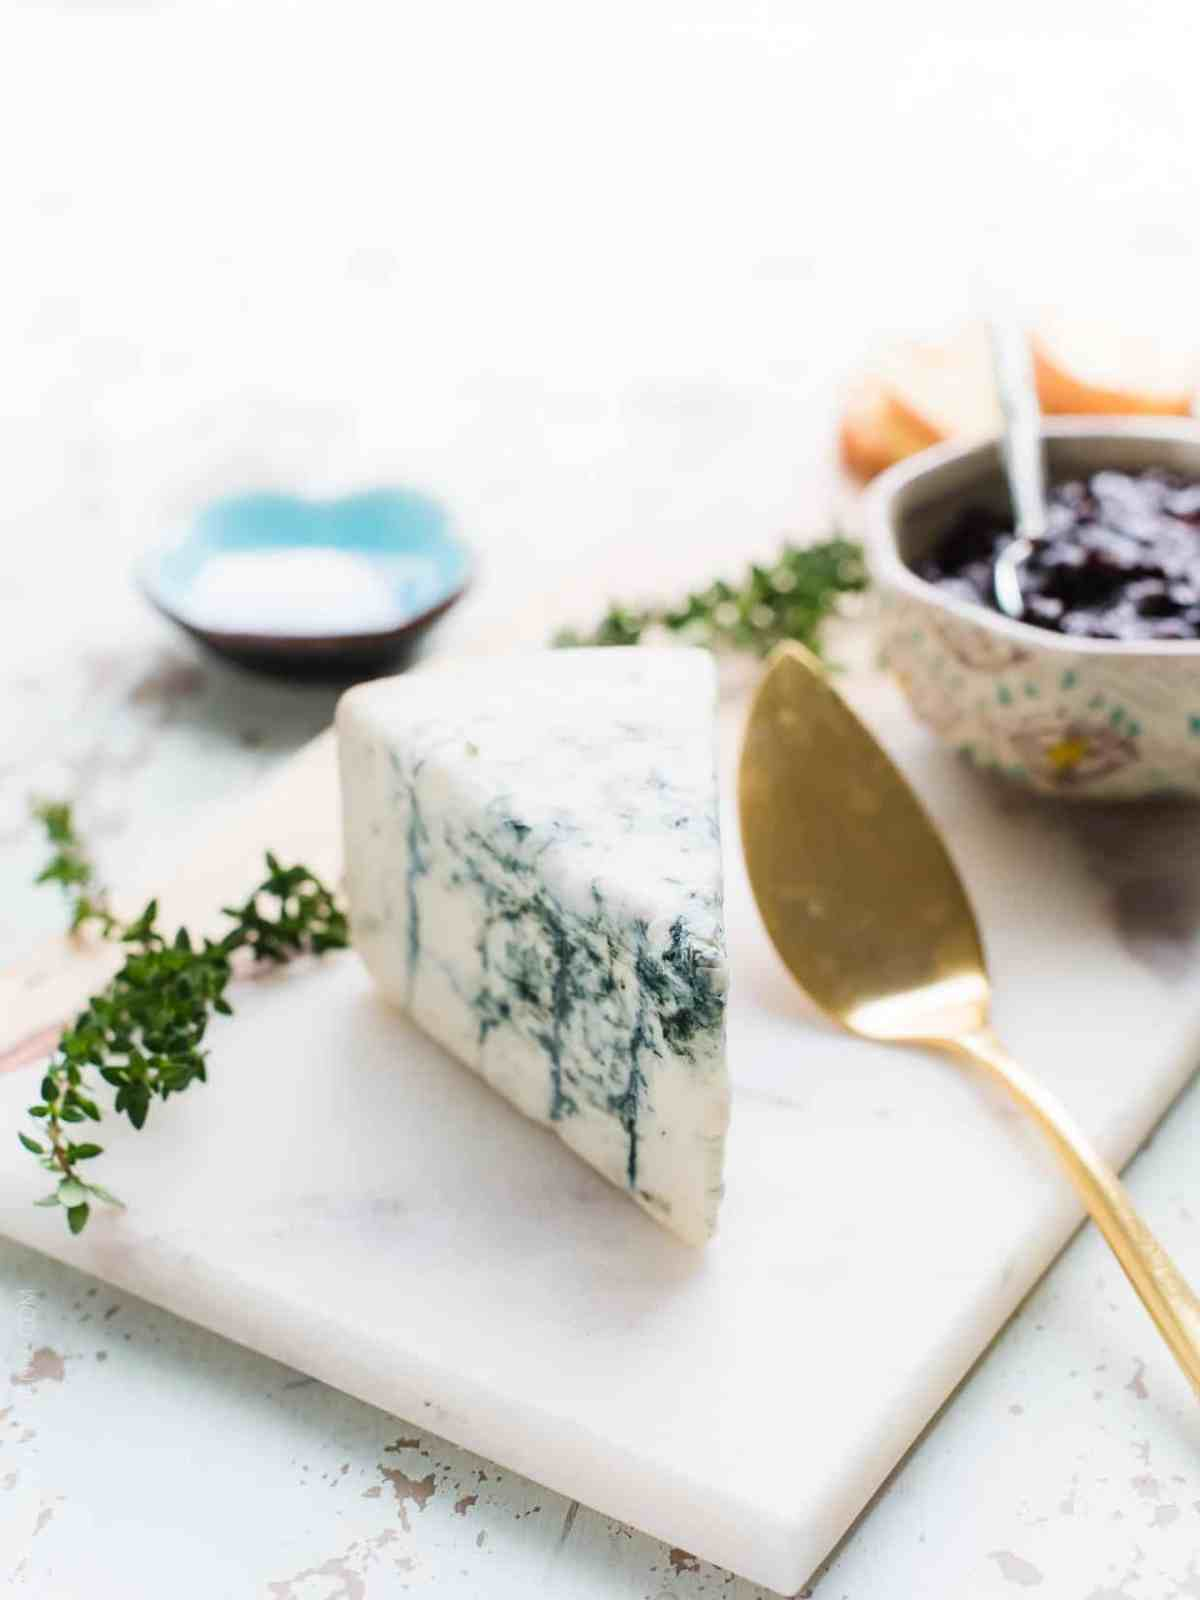 Wedge of Gorgonzola cheese on a white serving board ready to be used to prepare Crostini with Gorgonzola and Prune Chutney.